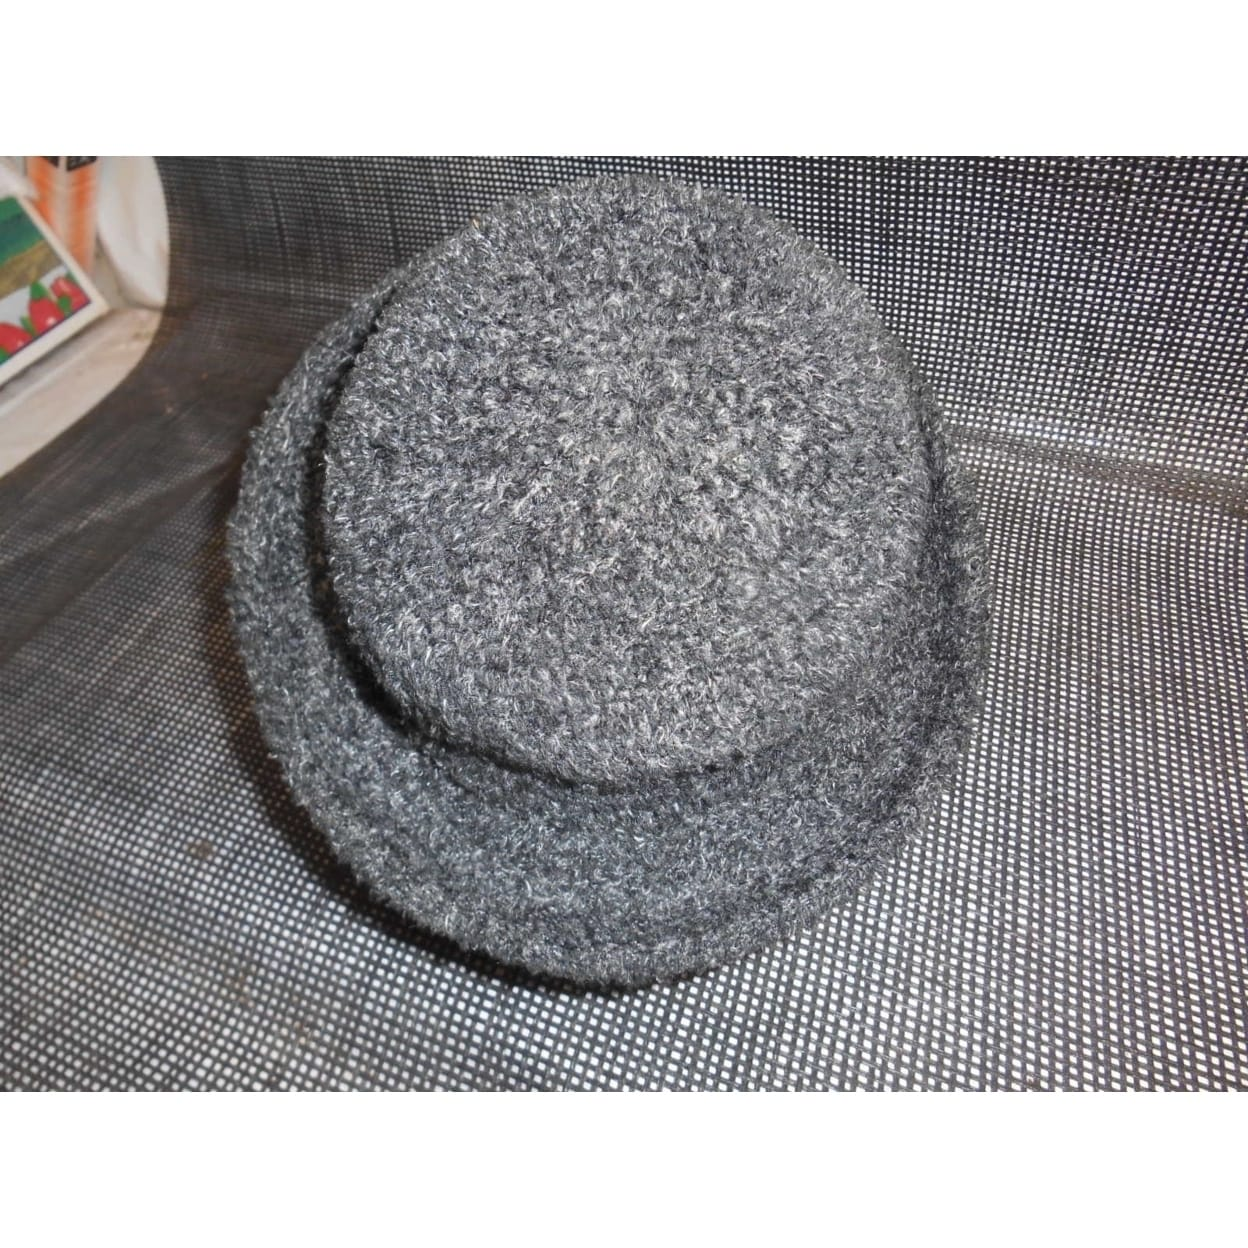 58f53d15796b7 Shop Old LIZ CLAIBORNE DESIGNER VILLAGER WOMEN S HAT Fashion Accessories -  Free Shipping On Orders Over  45 - Overstock - 23172562